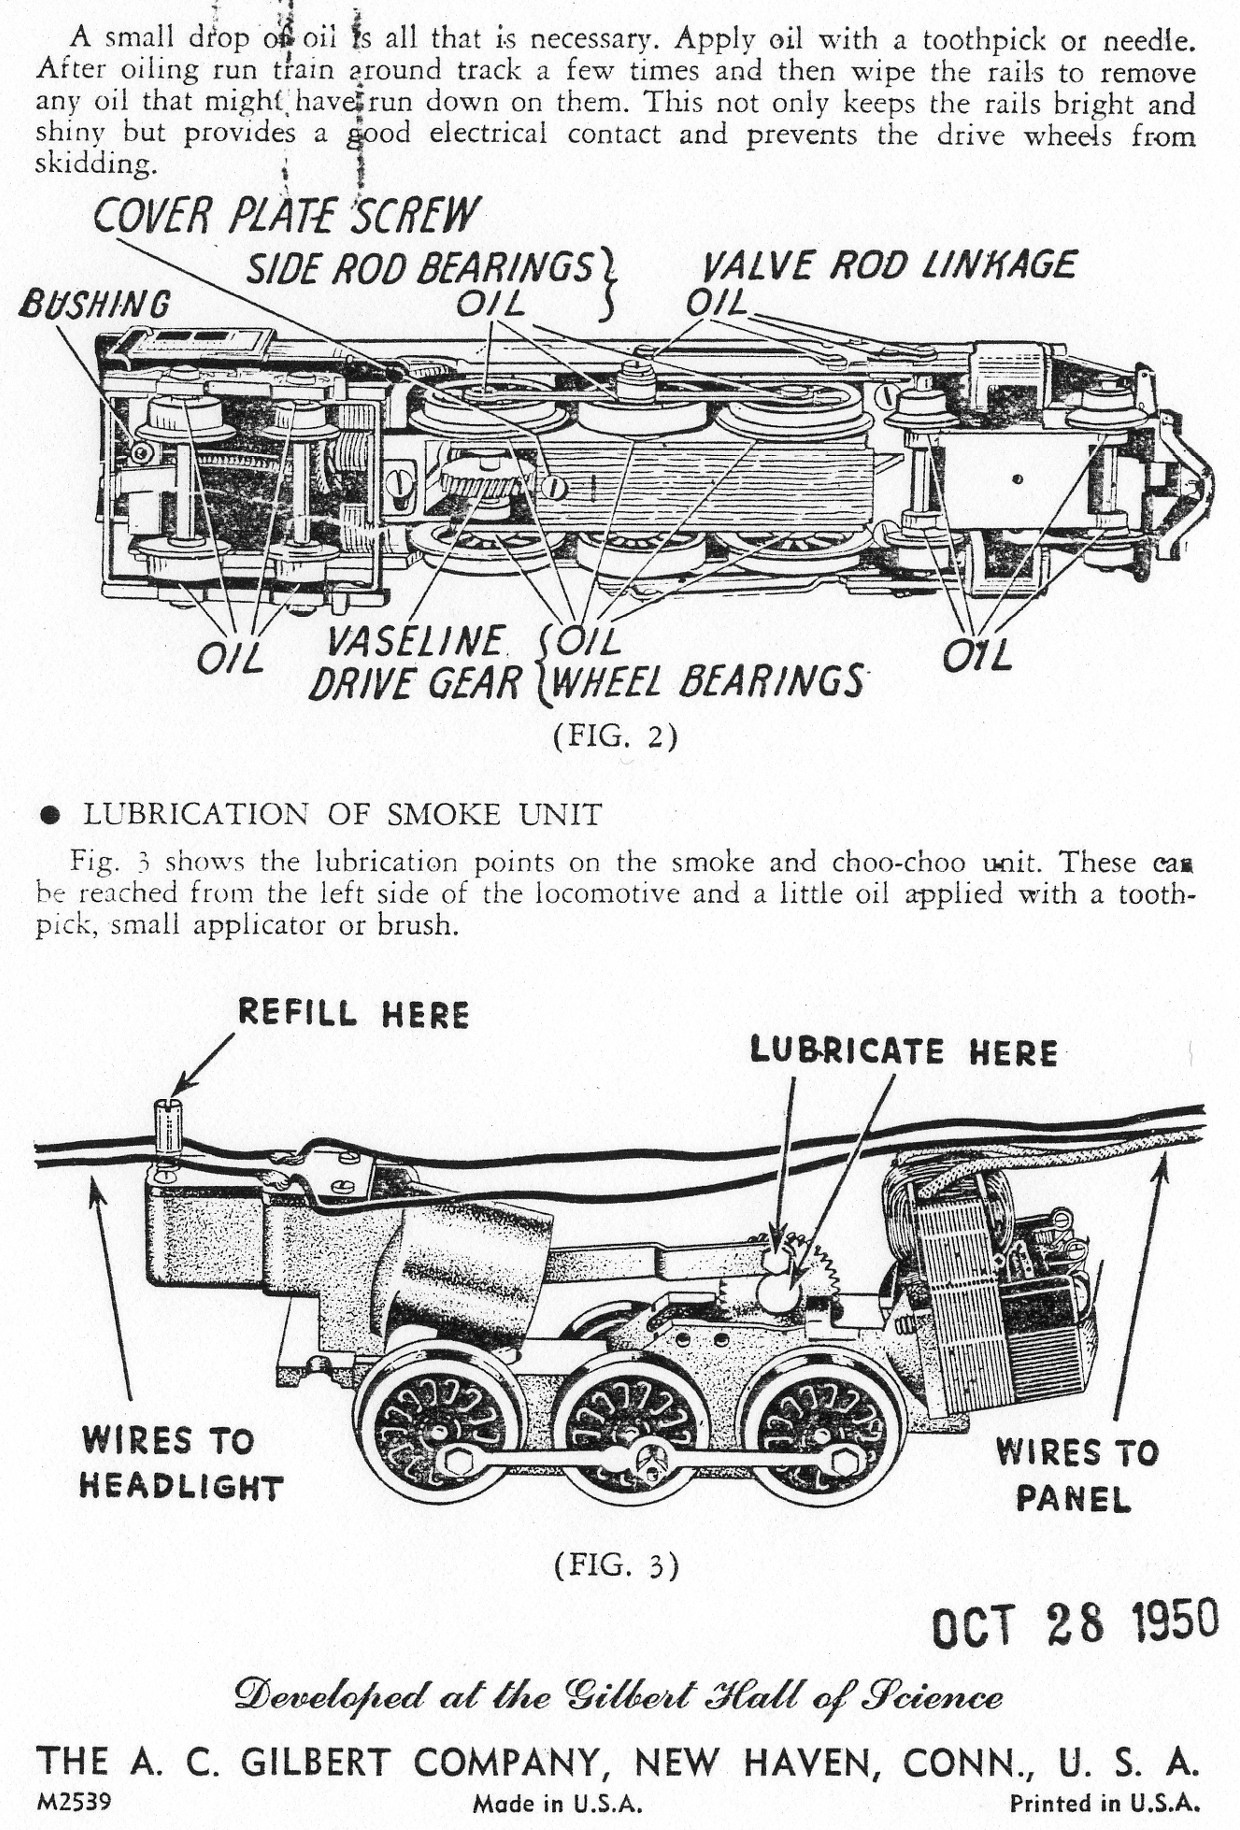 American Flyer Steam Engine Wiring Diagram American Flyer Lo Otive Worm Drive Instructions Of American Flyer Steam Engine Wiring Diagram